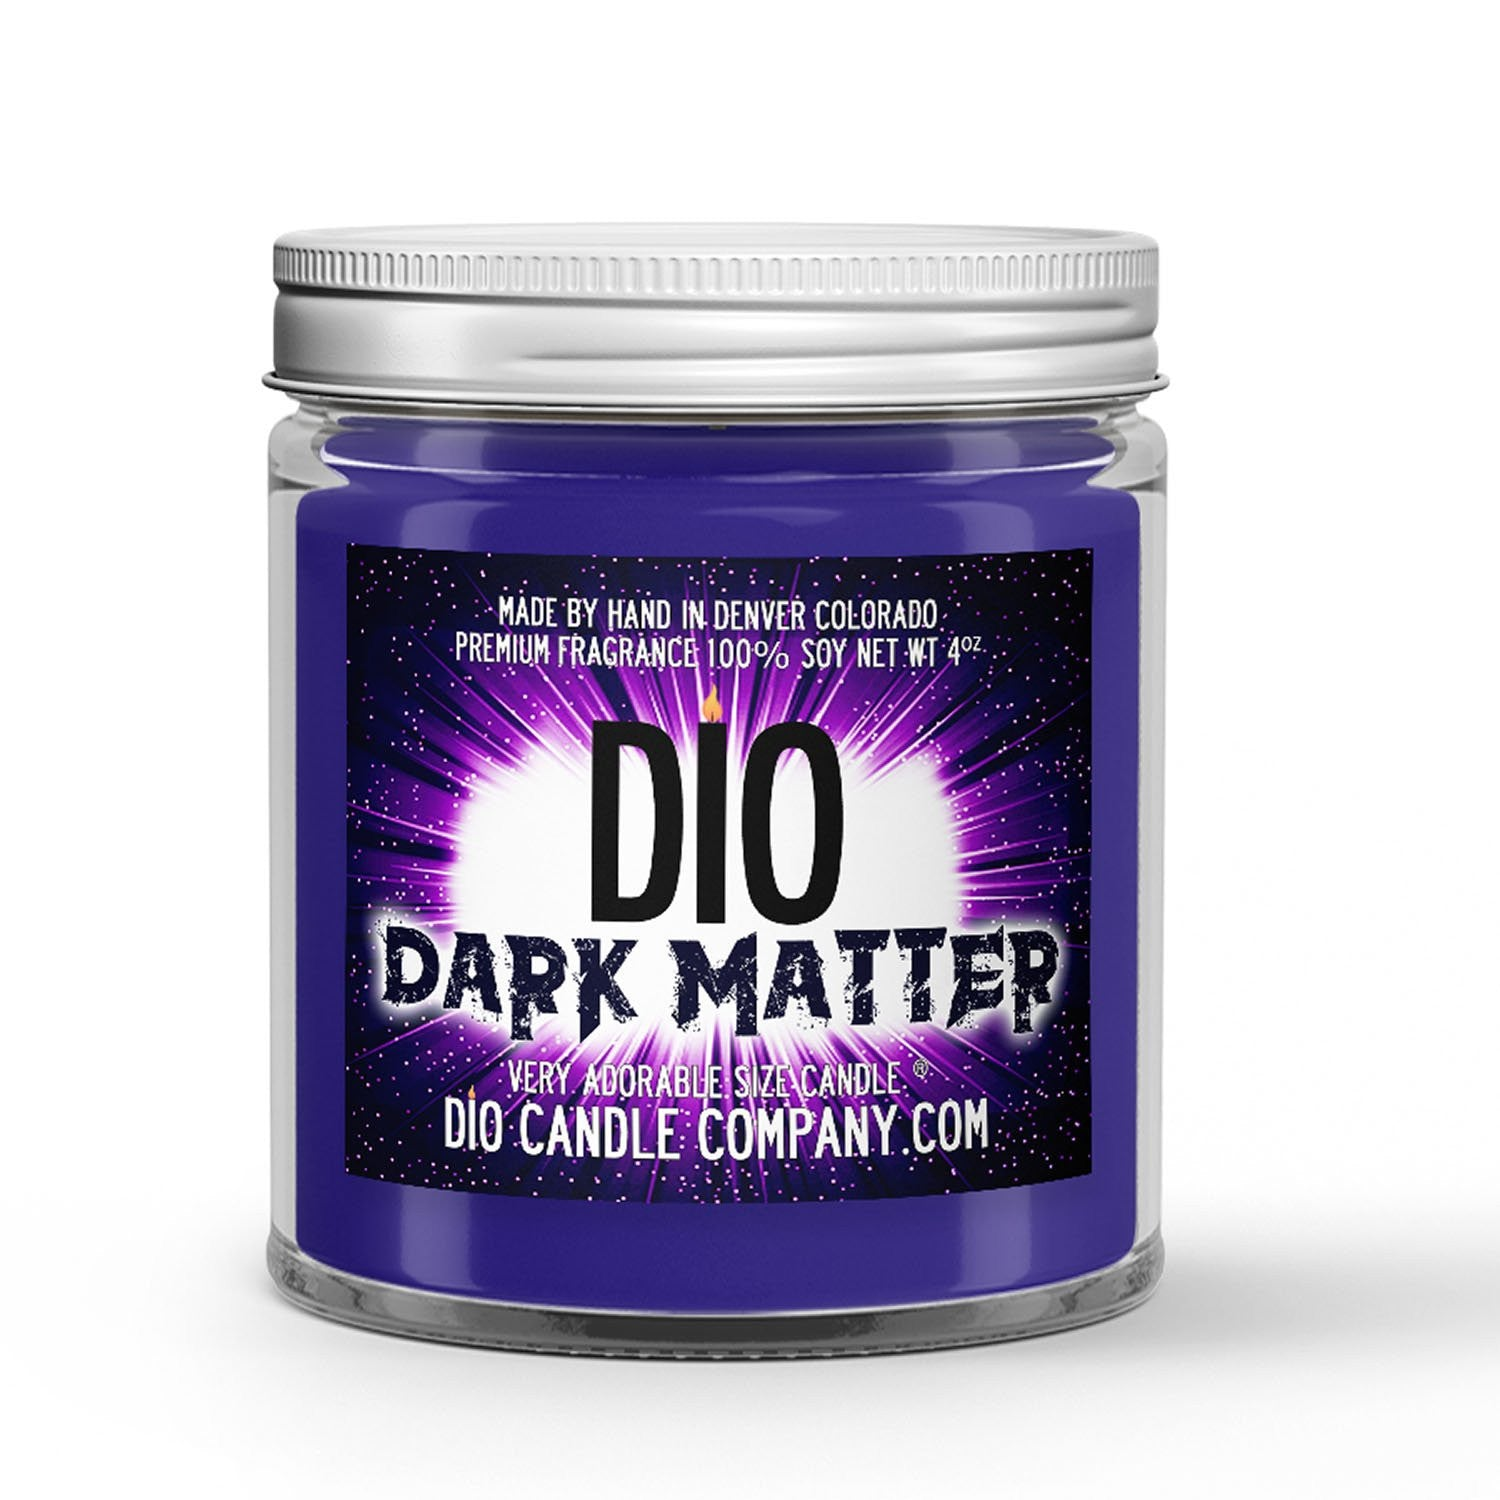 Dark Matter Candle Jasmine - Cedar - Moss Scented - Dio Candle Company